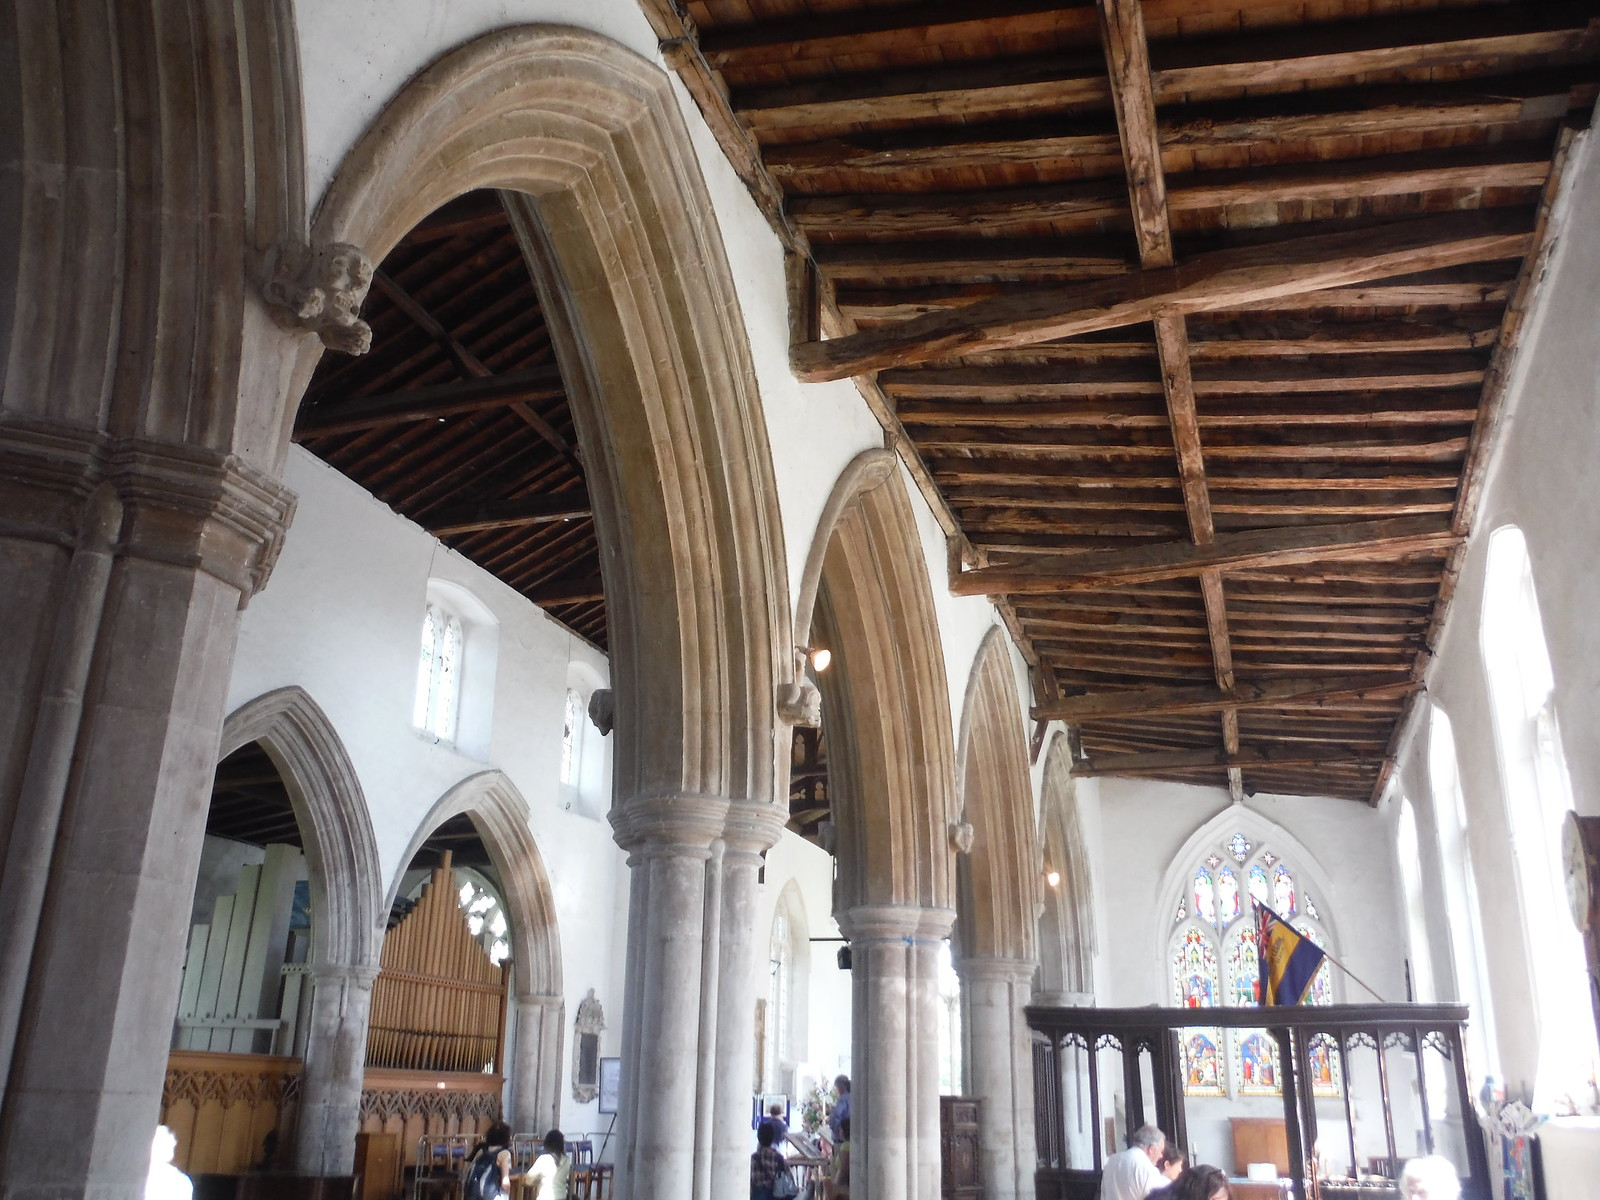 Interior of Ashwell Church SWC Walk 91 - Baldock Circular